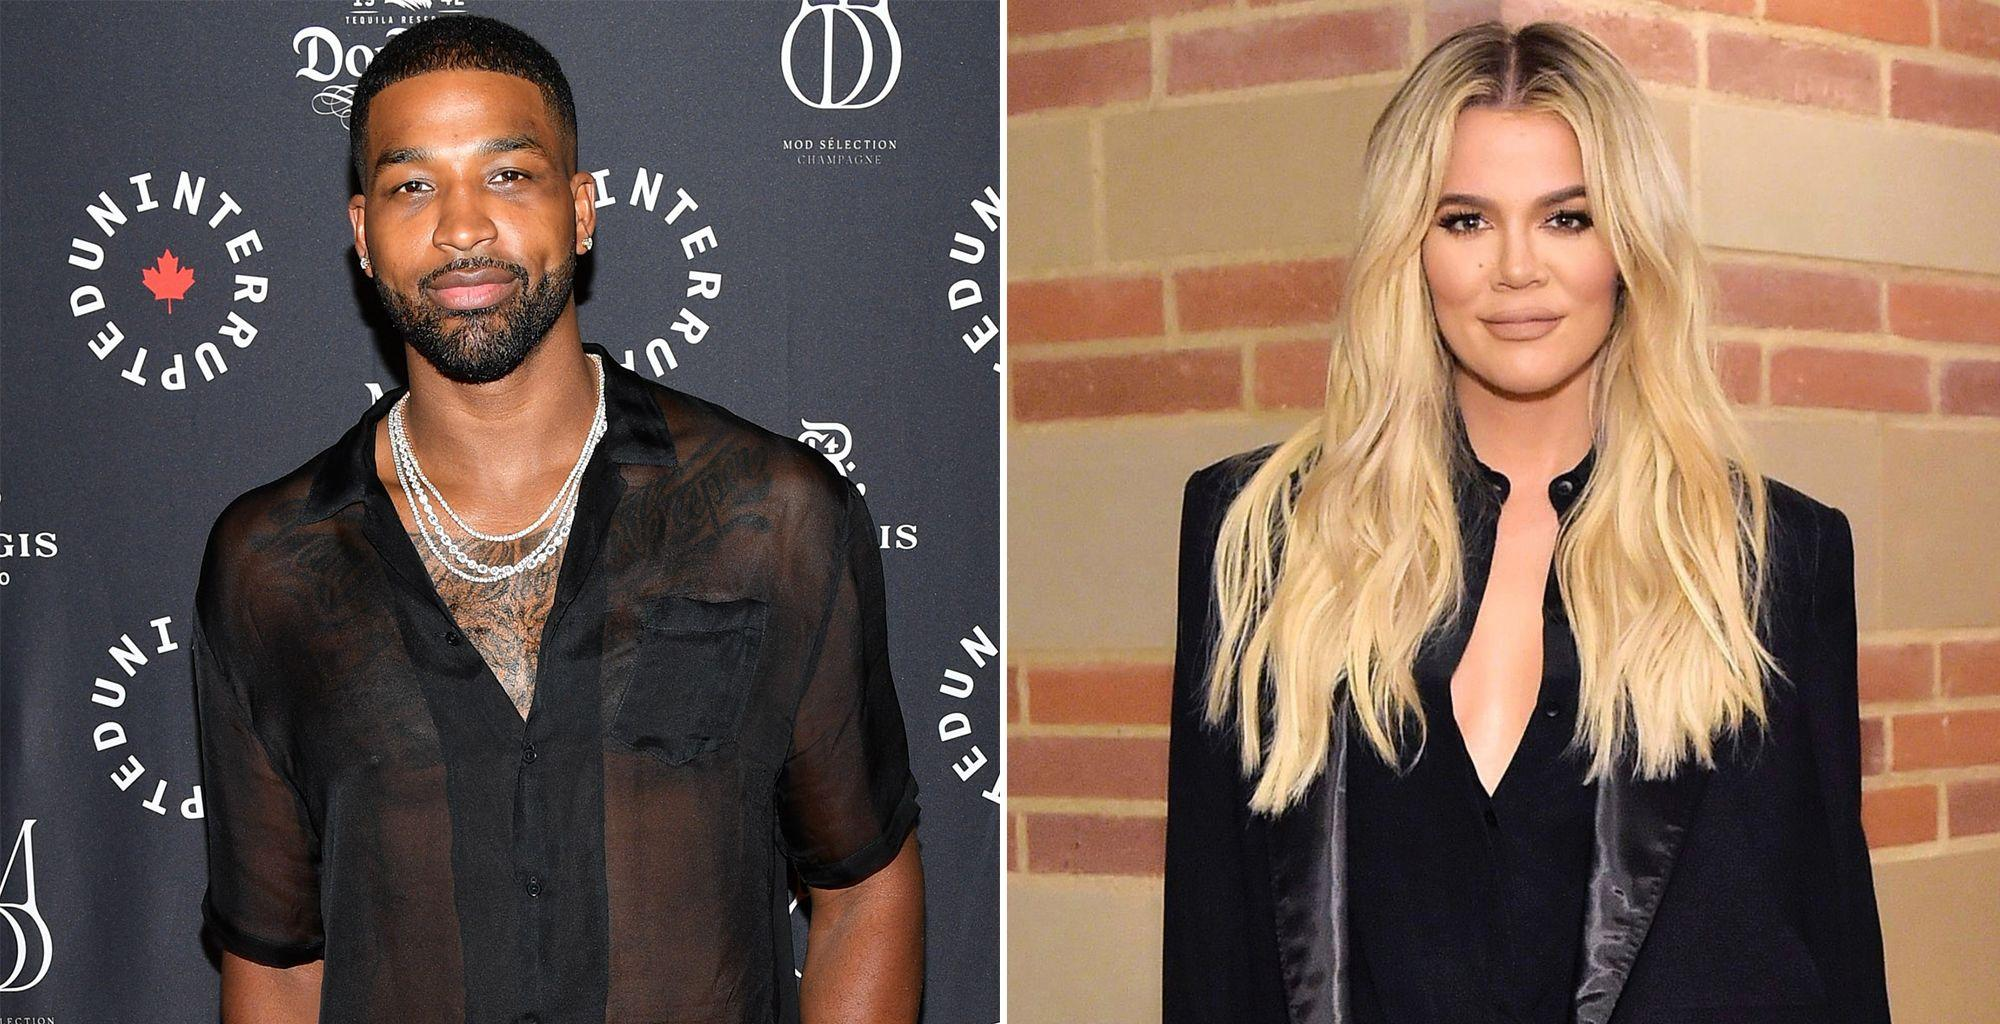 KUWTK: Khloe Kardashian Gushes Over Tristan Thompson In Birthday Message And Calls Him 'The One That's Meant To Be!'